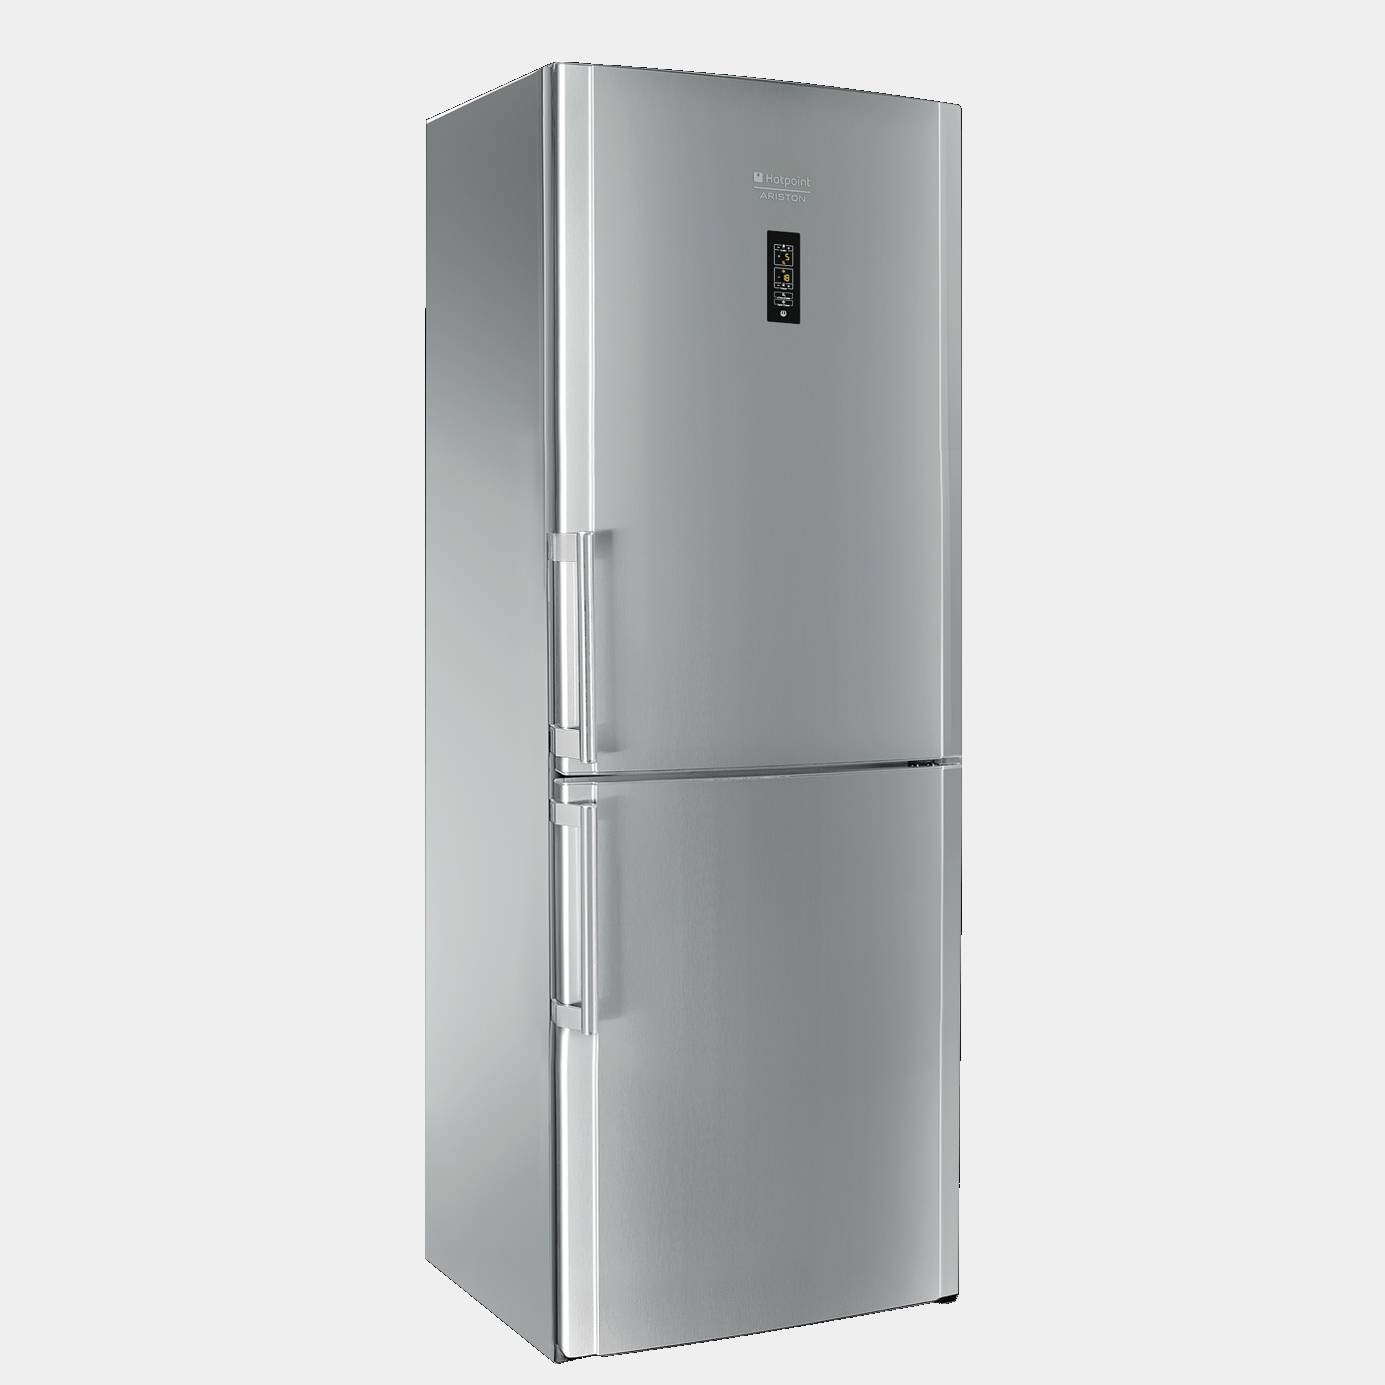 hotpoint enbyh19323fwo3 inox frigo combi no frost 195 5x70 a. Black Bedroom Furniture Sets. Home Design Ideas